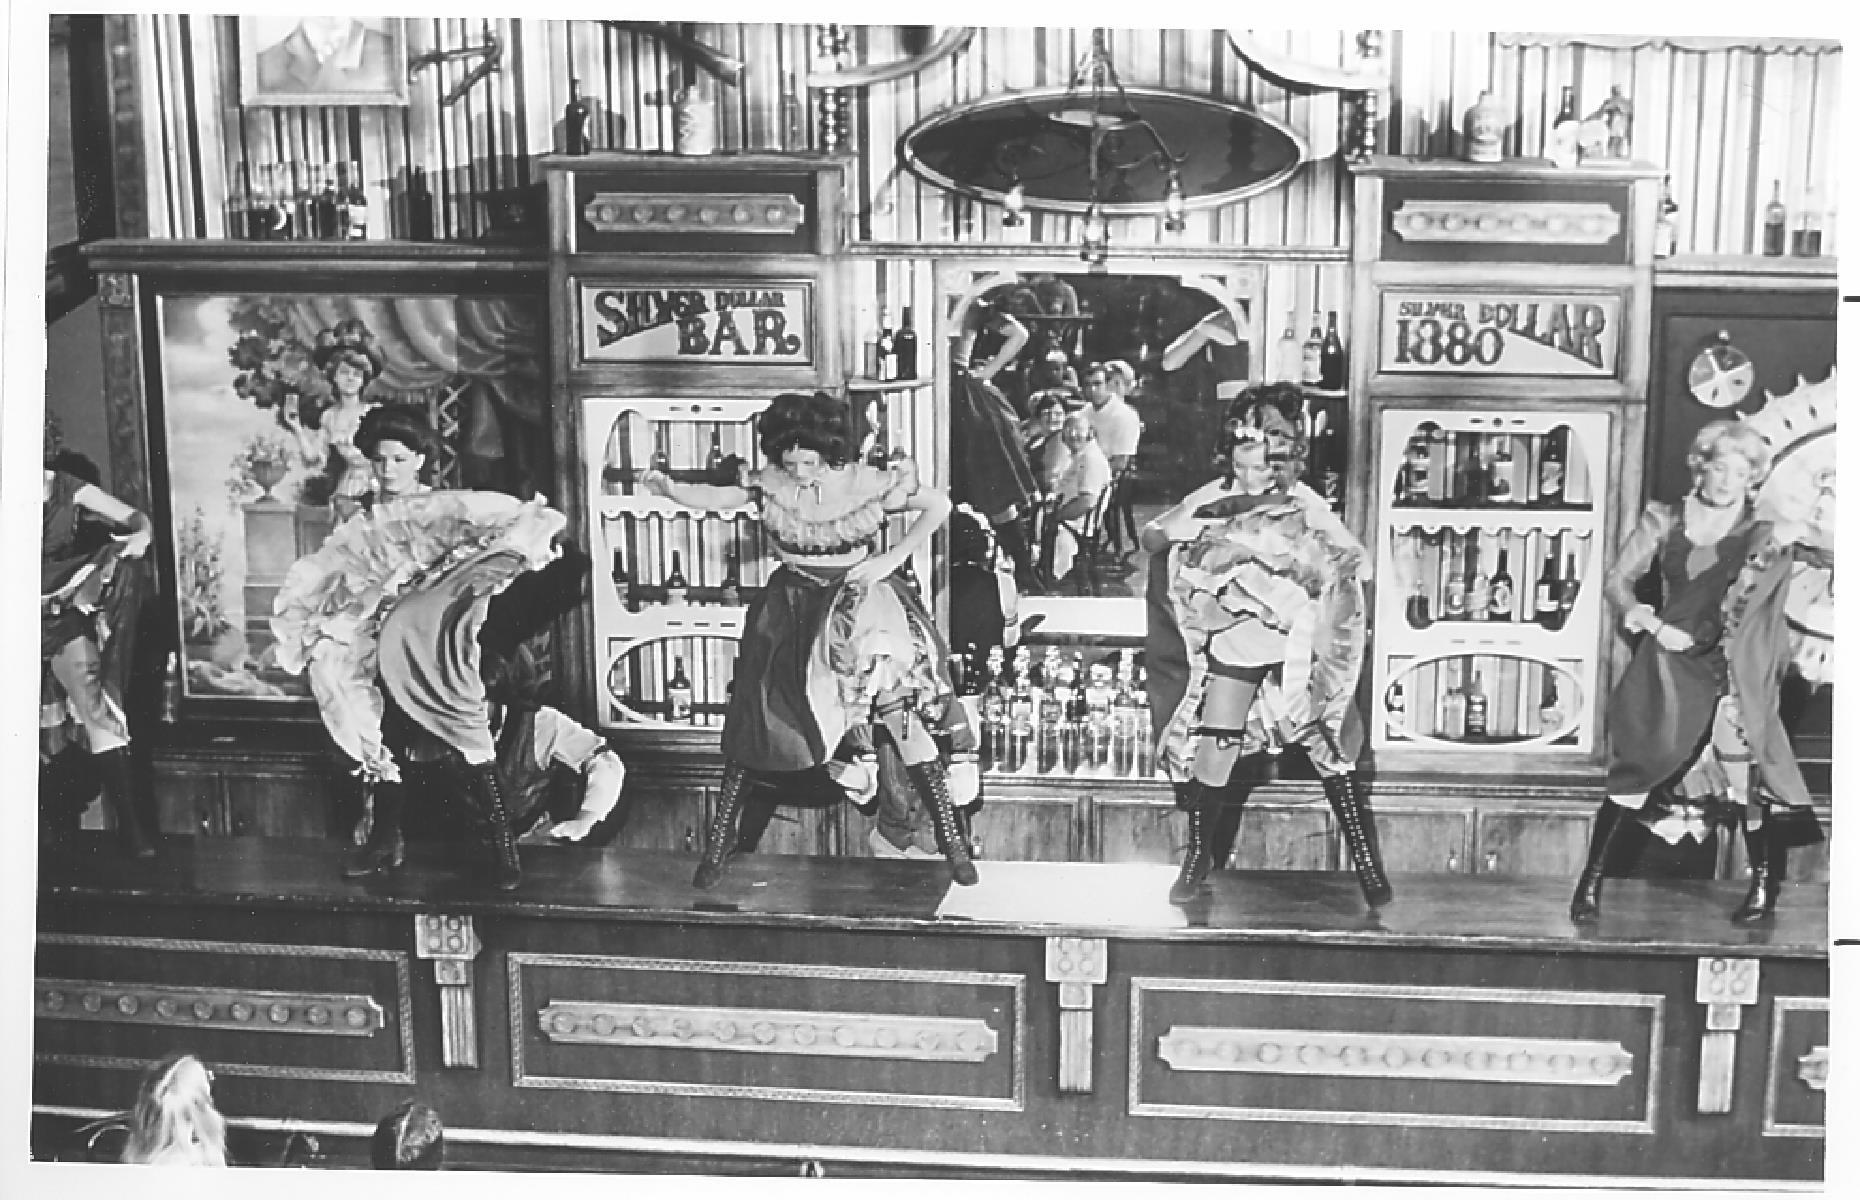 Slide 17 of 35: Alongside the carefully curated Old West-style attractions, visitors to the park could expect plenty of live entertainment. Pictured here is a stomping saloon show in the Silver Dollar Bar – look carefully and you can see the faces of delighted audience members in the mirror.